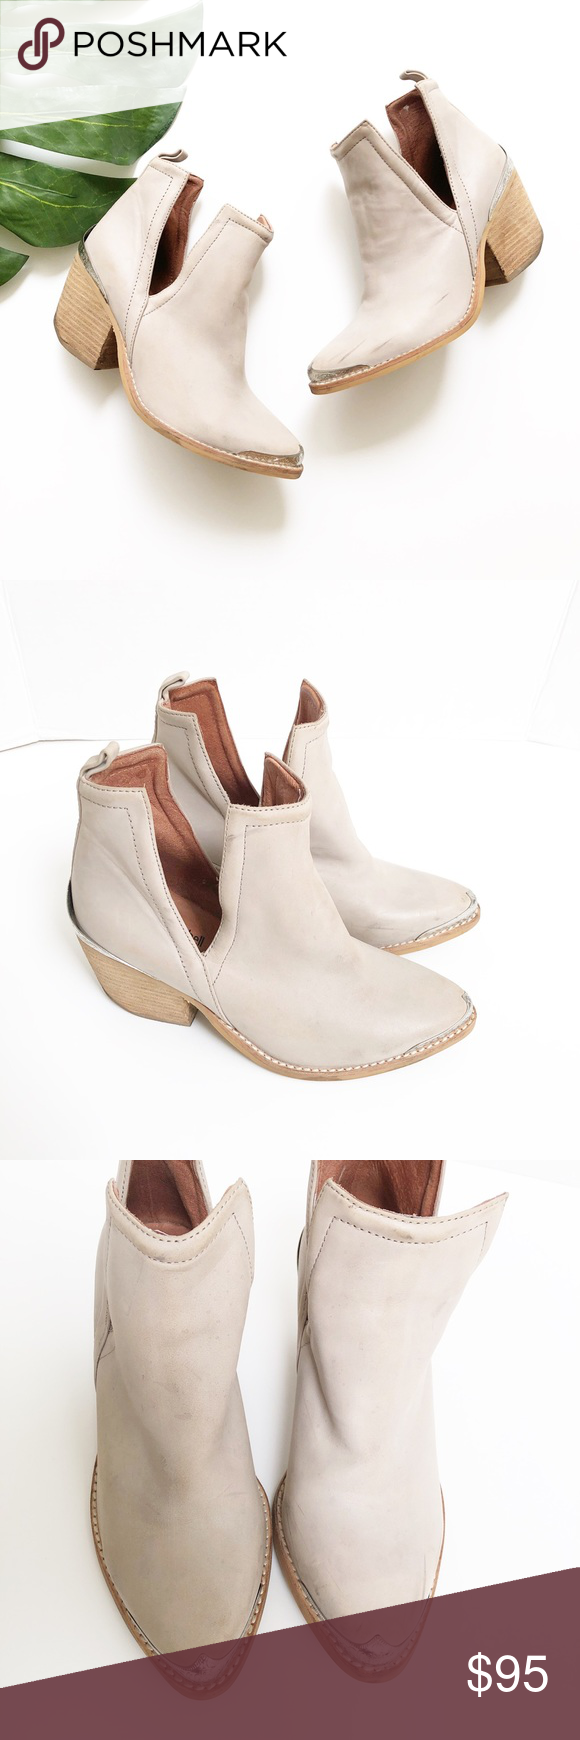 8768bff014a Jeffrey Campbell Leather Western Cutout Boots Jeffrey Campbell Leather  Western Cutout ankle Boots in taupe